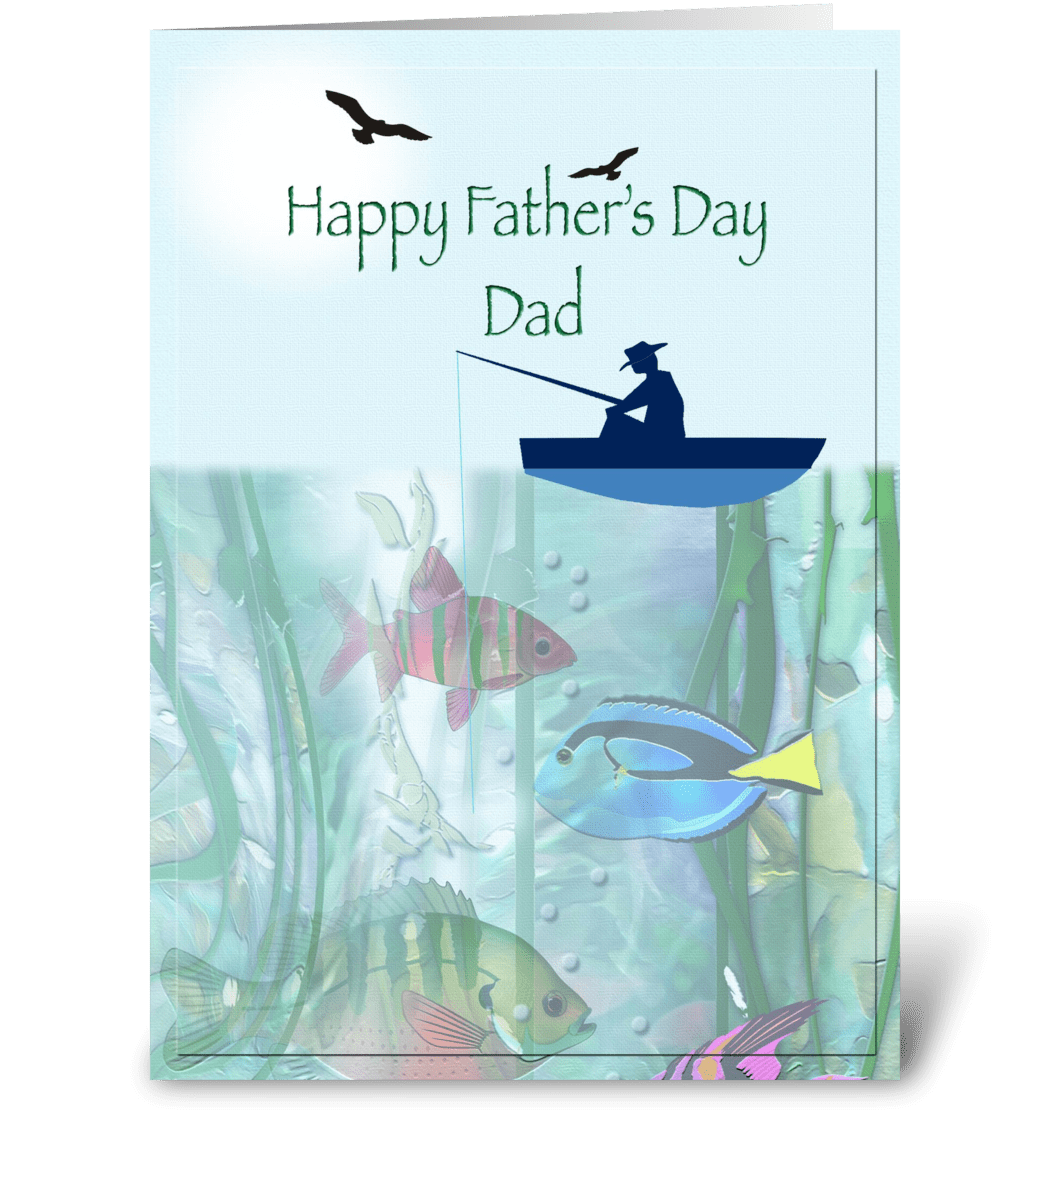 Dad fishing, Father's Day - Send this greeting card ...